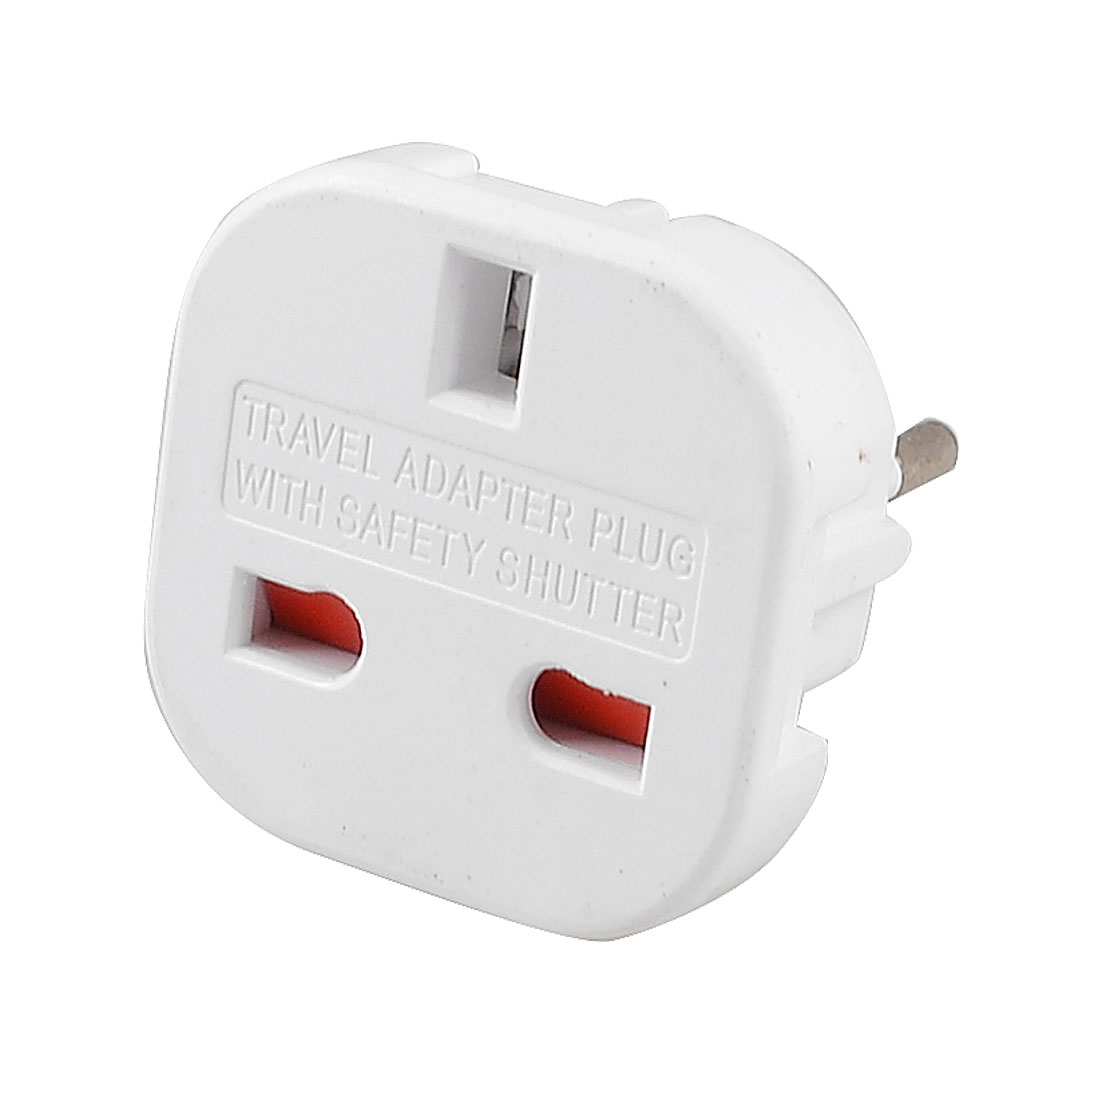 EU 2 Pole Plug to 3 Pole UK Socket Travel Adapter Converter White AC 240V 10A/16A